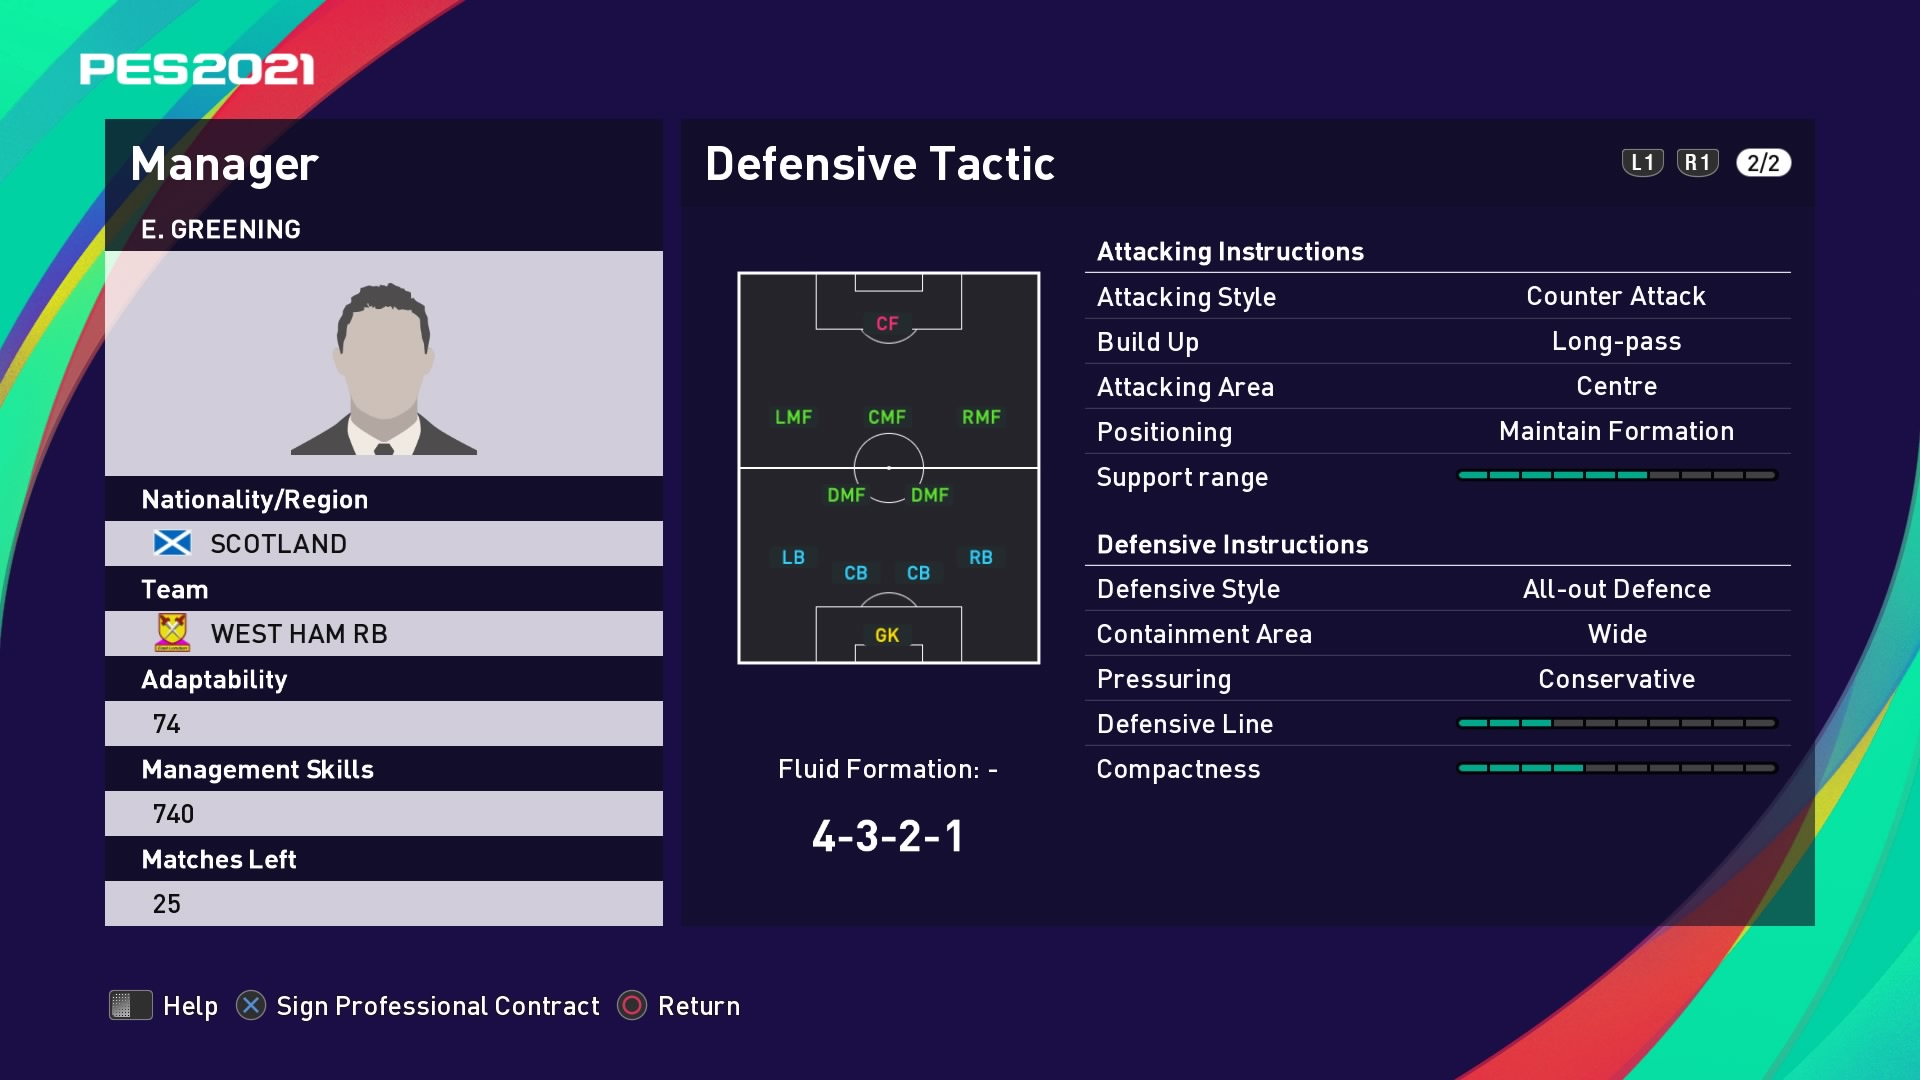 E. Greening (David Moyes) Defensive Tactic in PES 2021 myClub